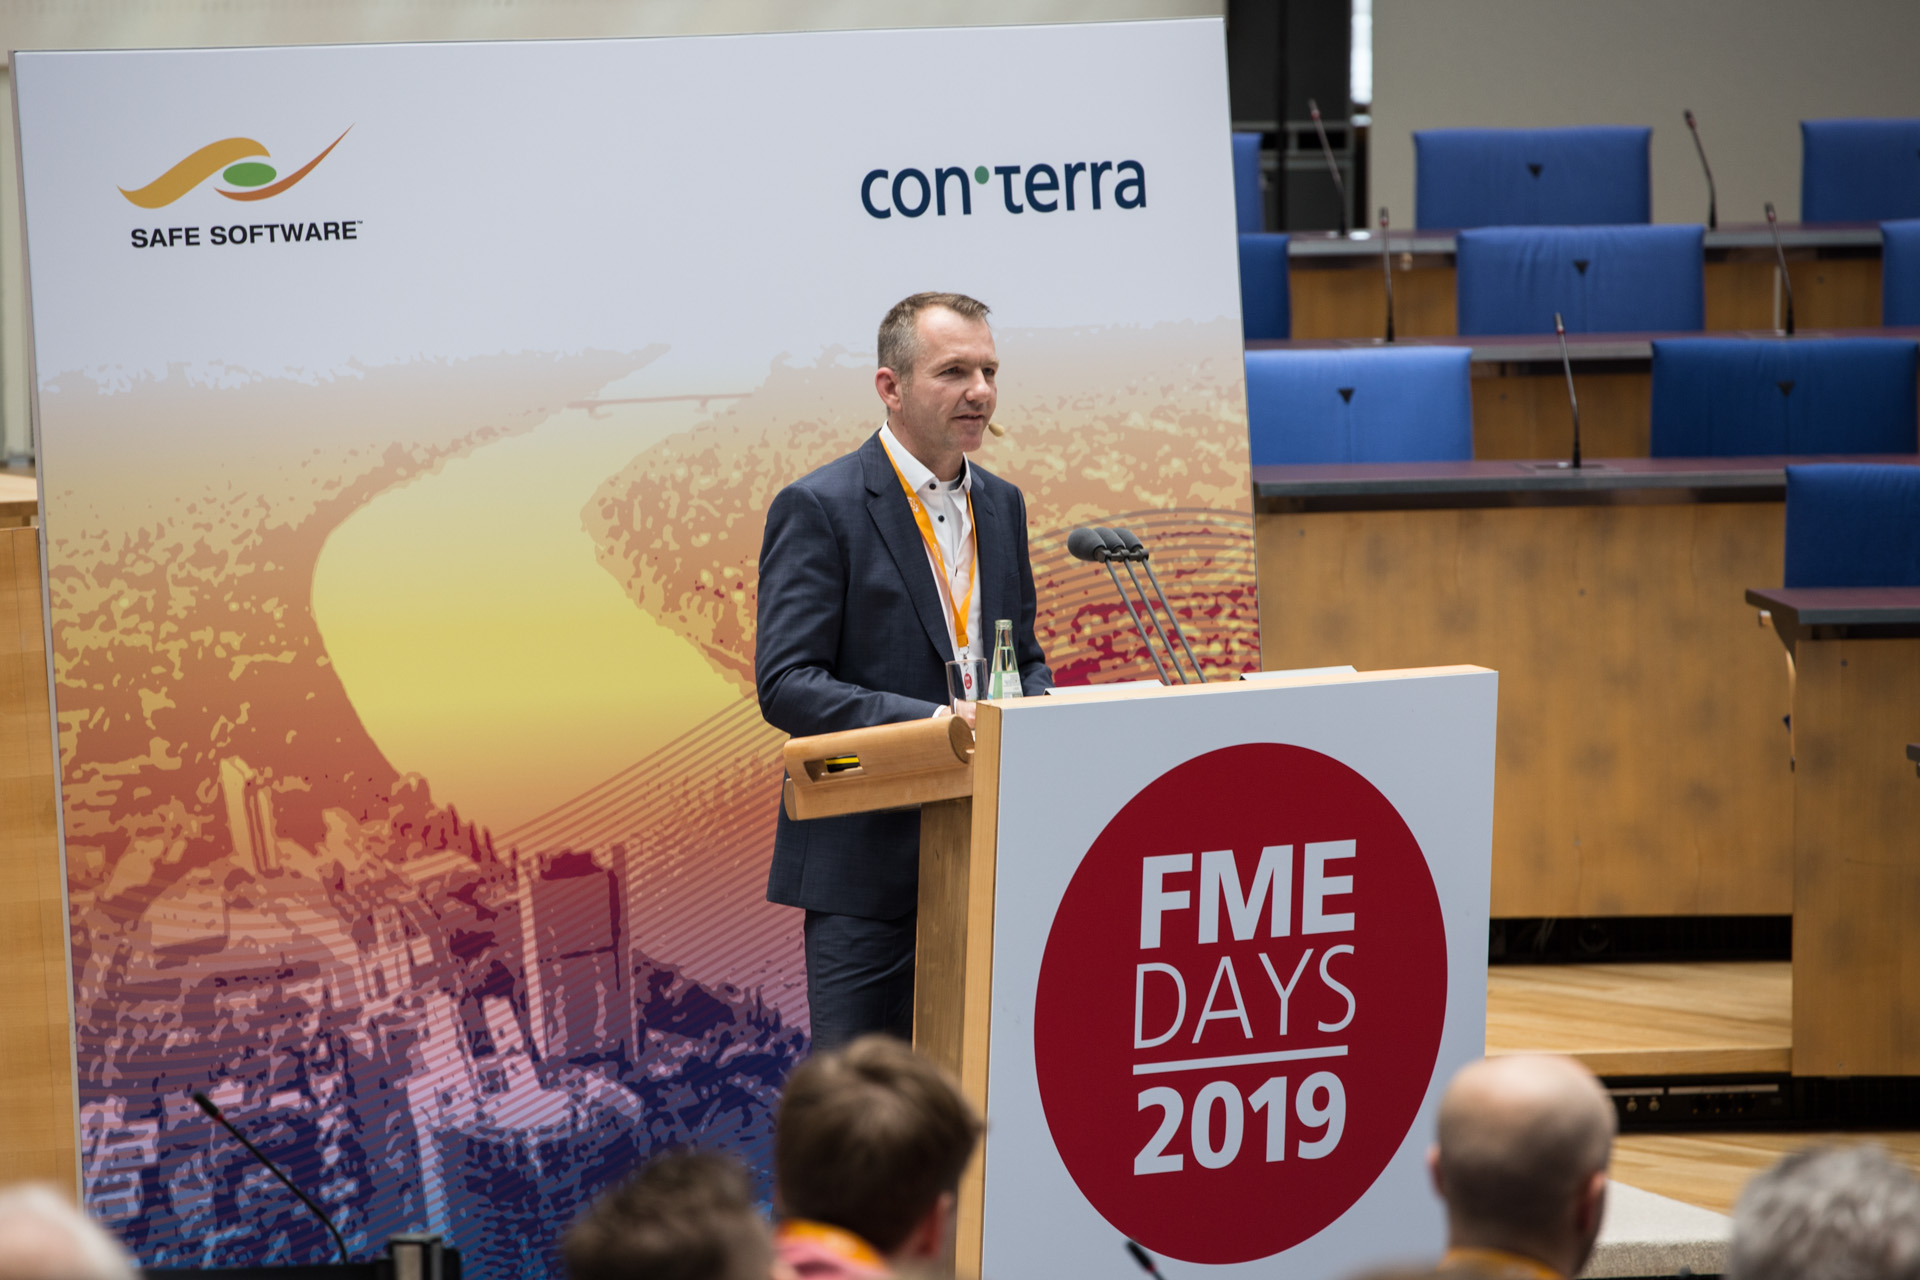 FME Days 2019